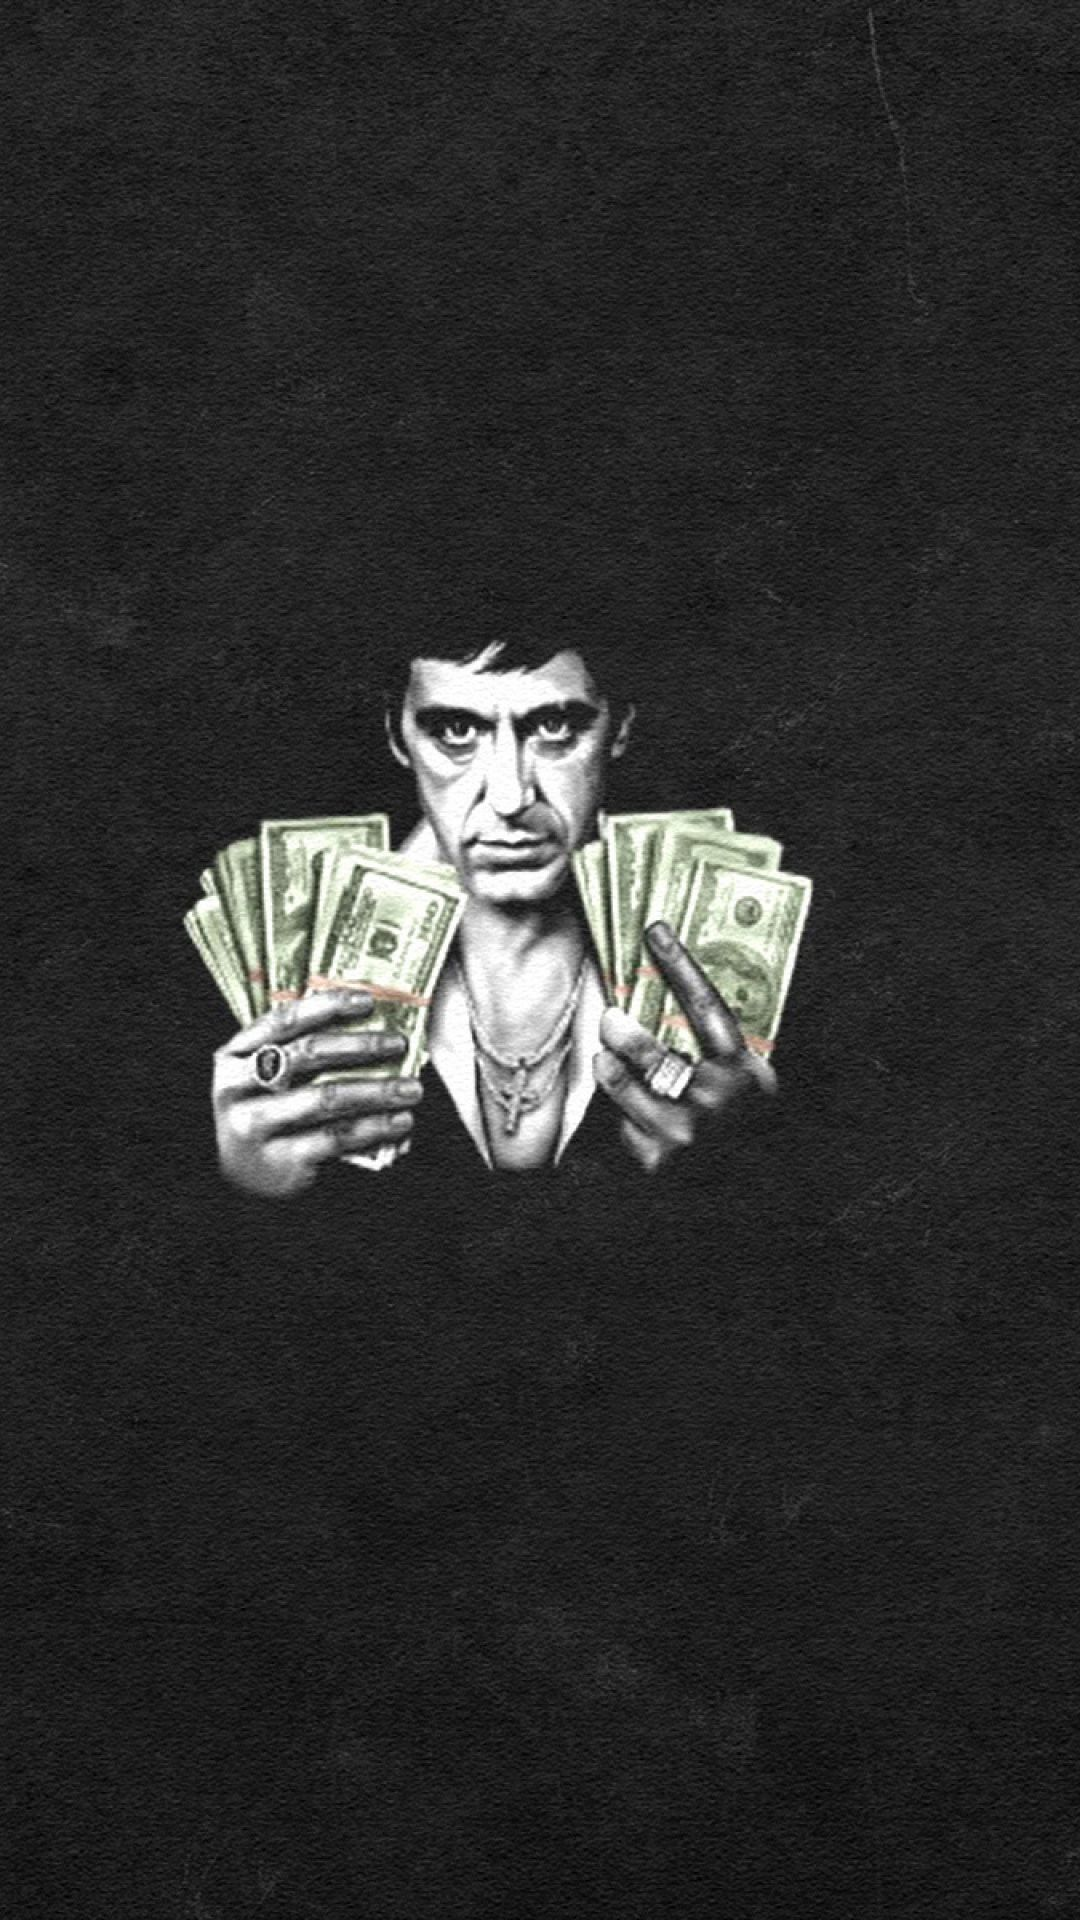 Scarface Hd Wallpaper Android > Flip Wallpapers > Download